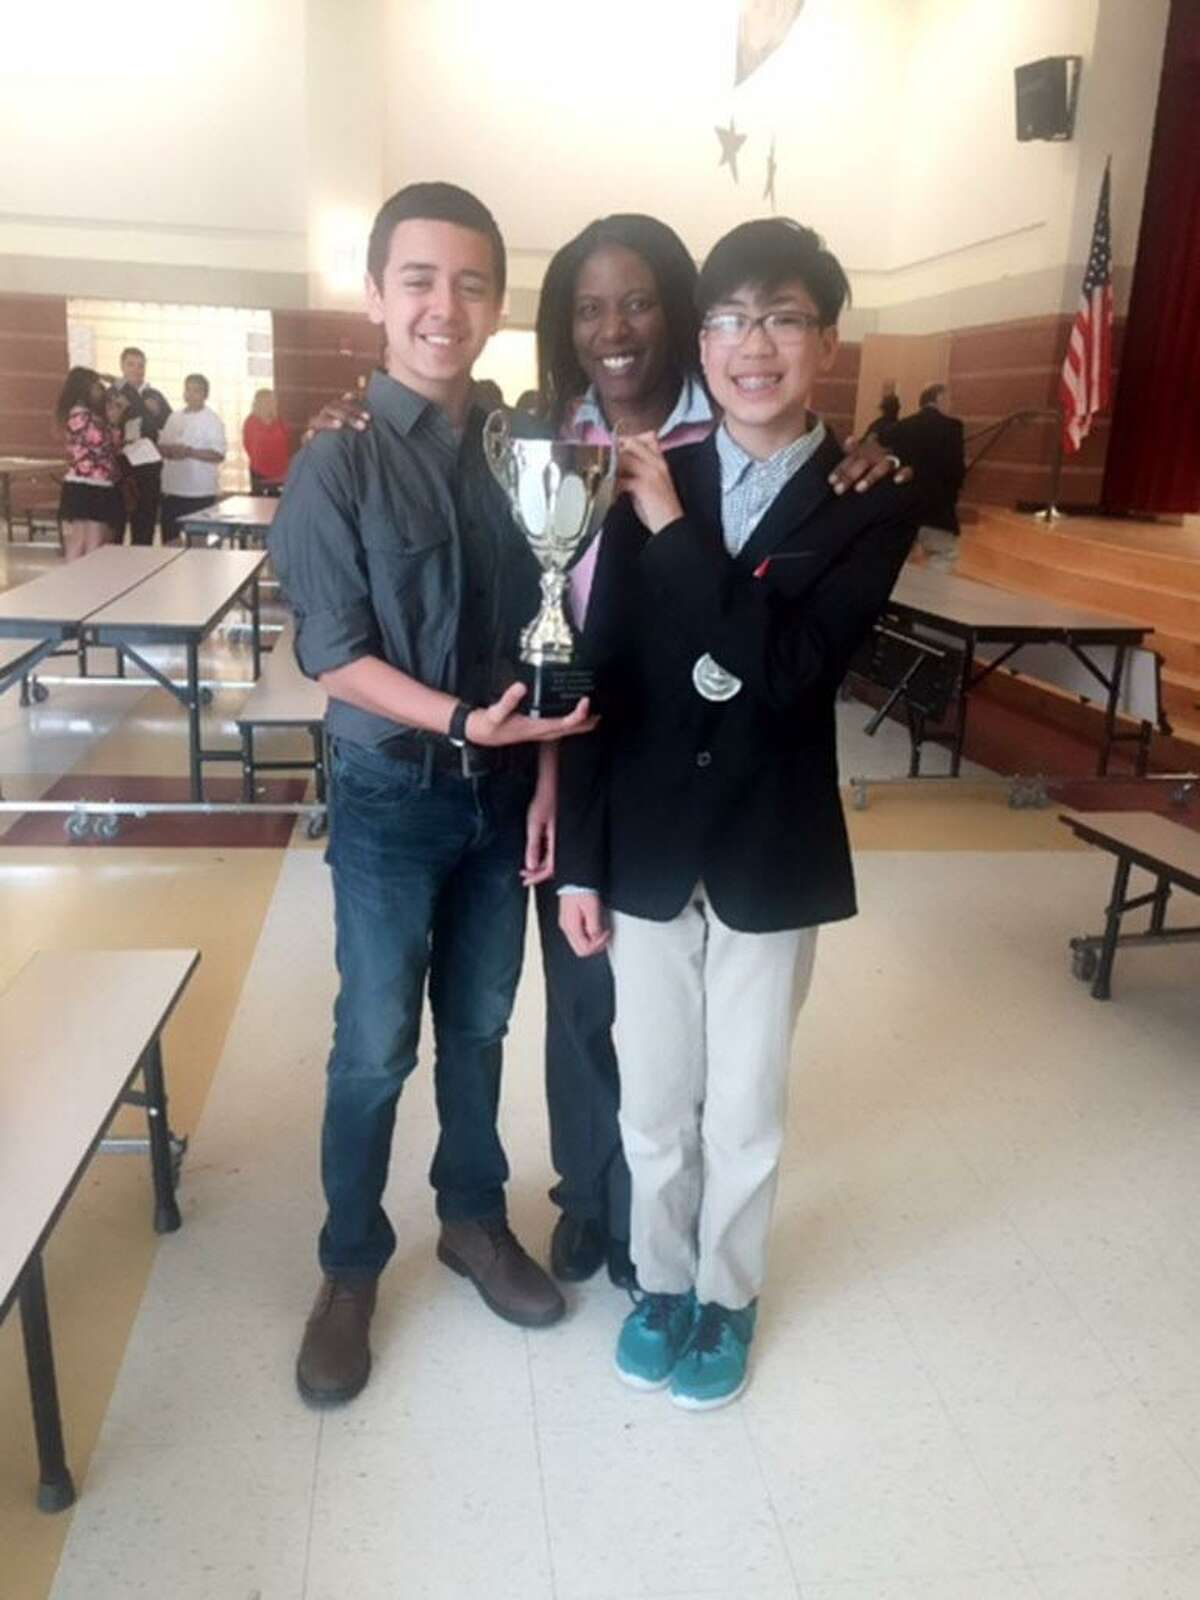 Winners of the 2016 Bridgeport Debate Competition, Discovery Magnet Schoolwith their coach Careen Derise.